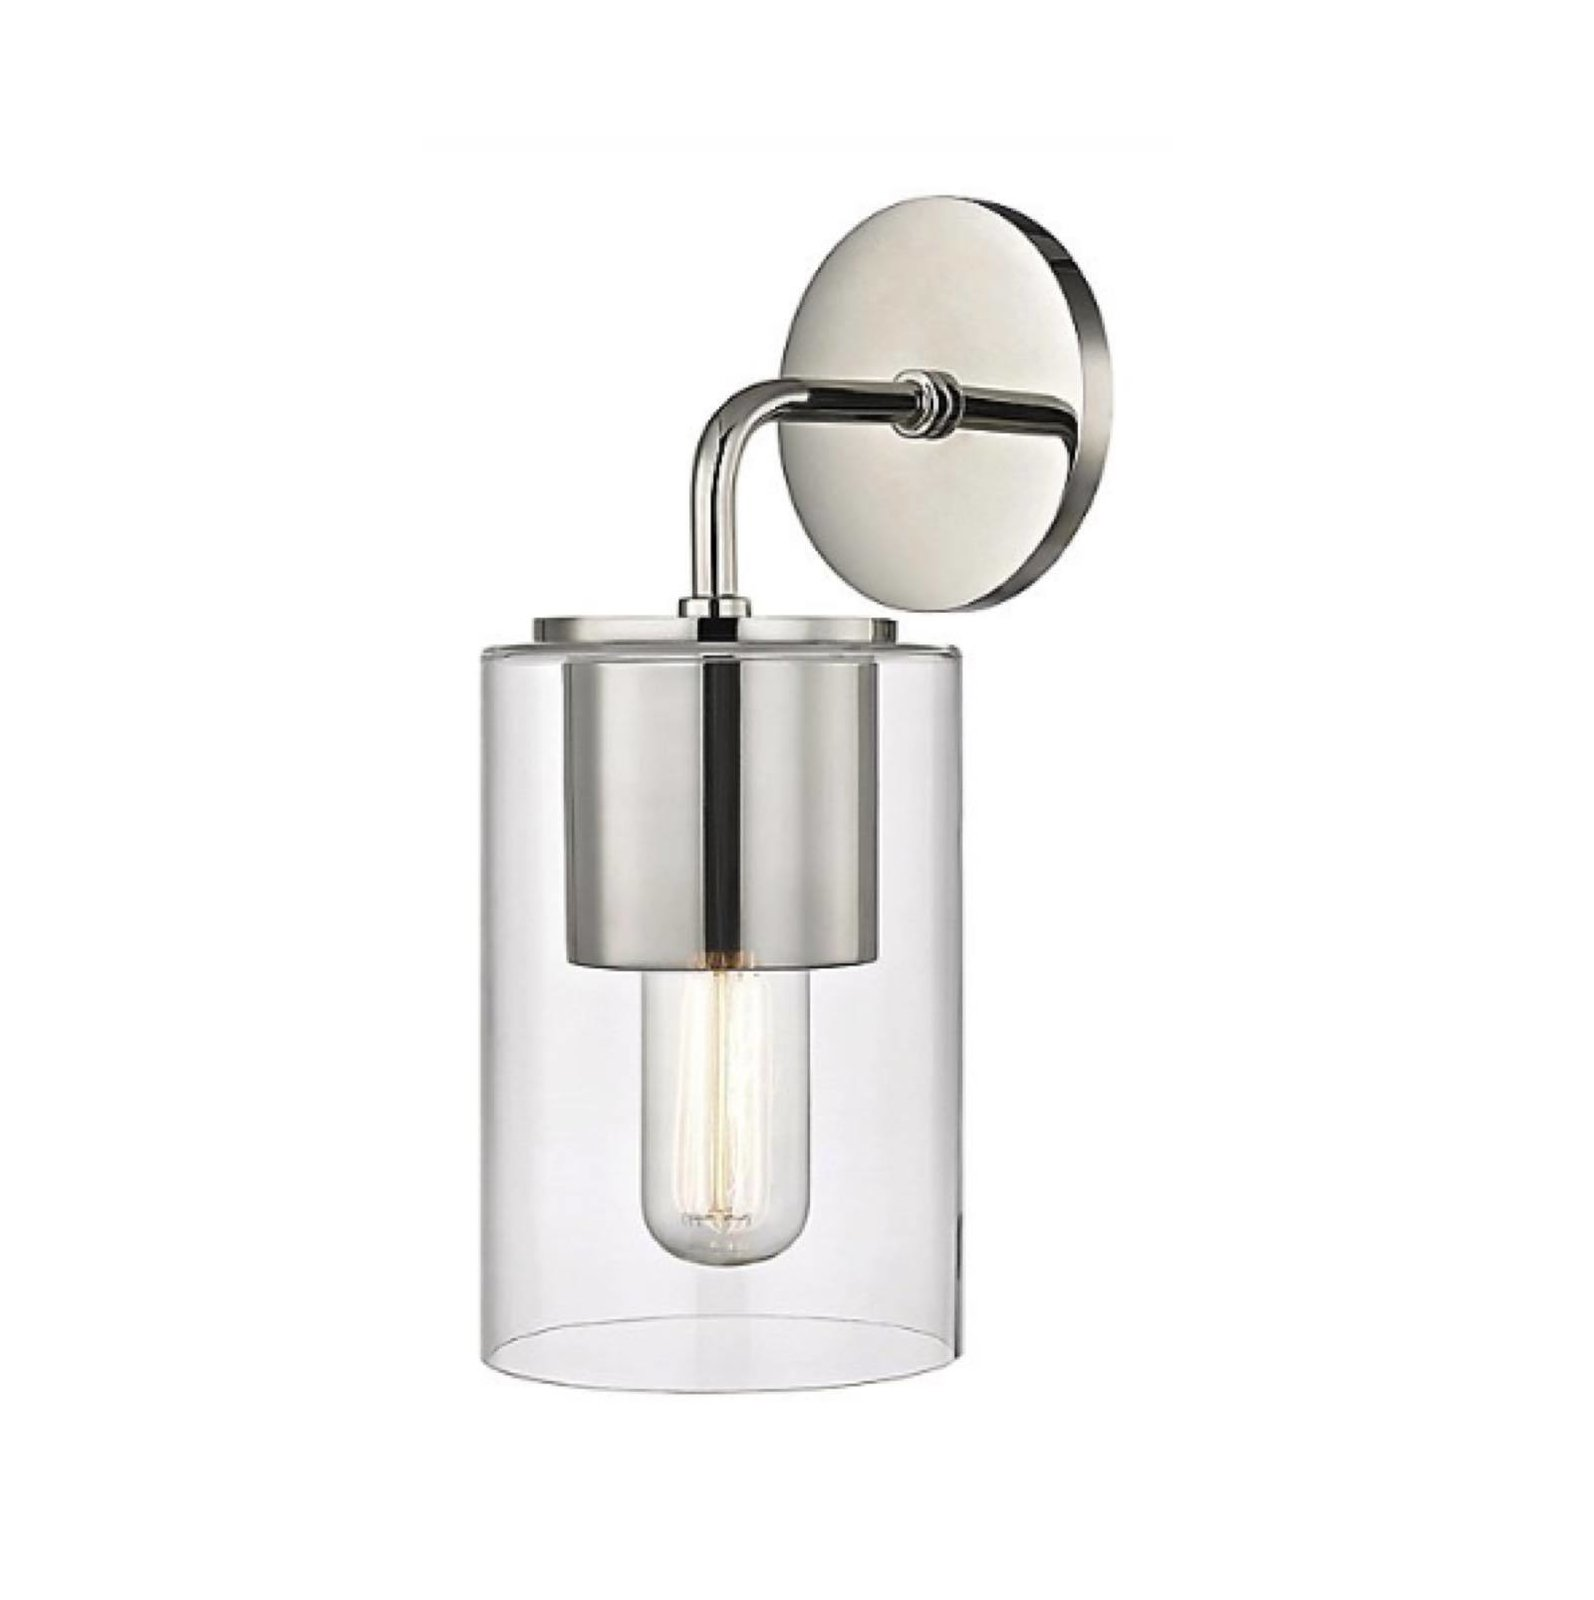 Hudson Valley Lighting Careers: Mitzi By Hudson Valley Lighting Lula Wall Sconce By